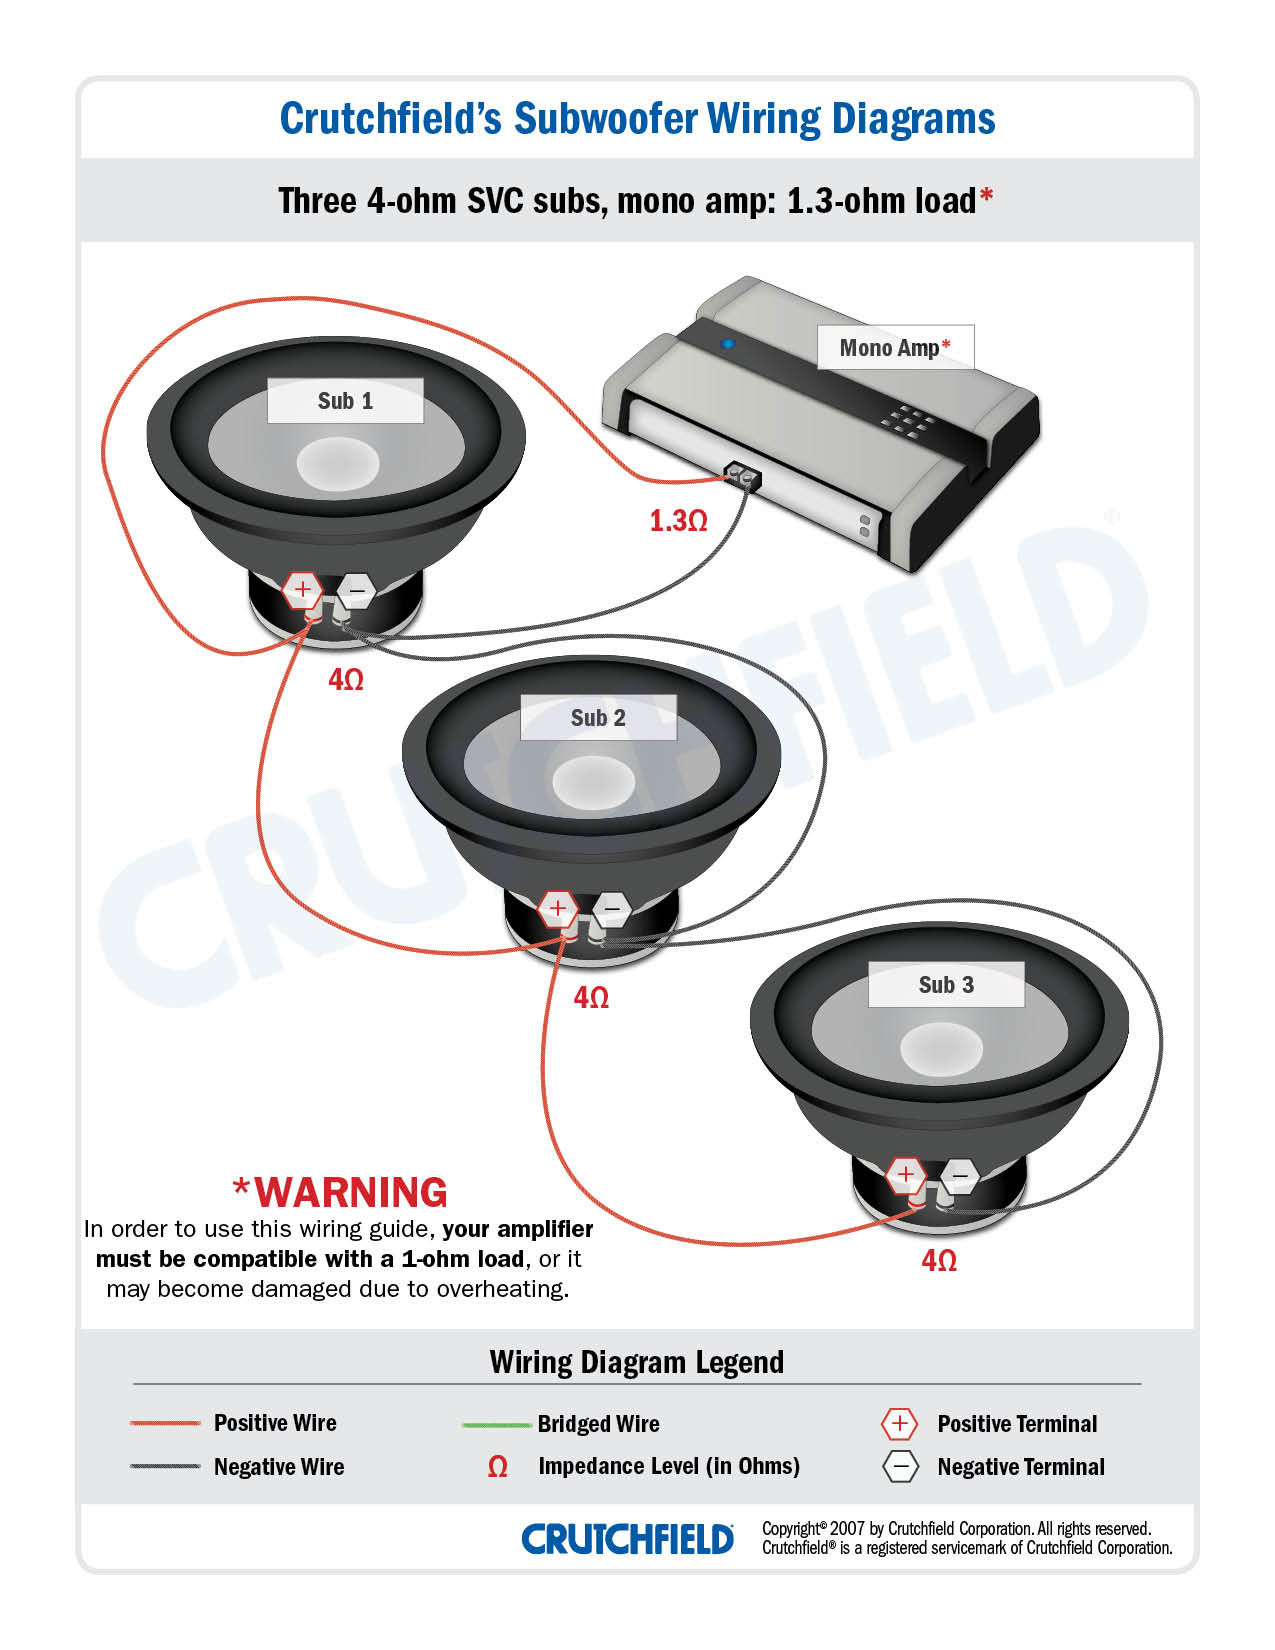 3 4 Ohm Subs Wiring Diagram Libraries Kubota Denso 131800 8012 Subwoofer Diagrams U2014 How To Wire Your Subs3 1